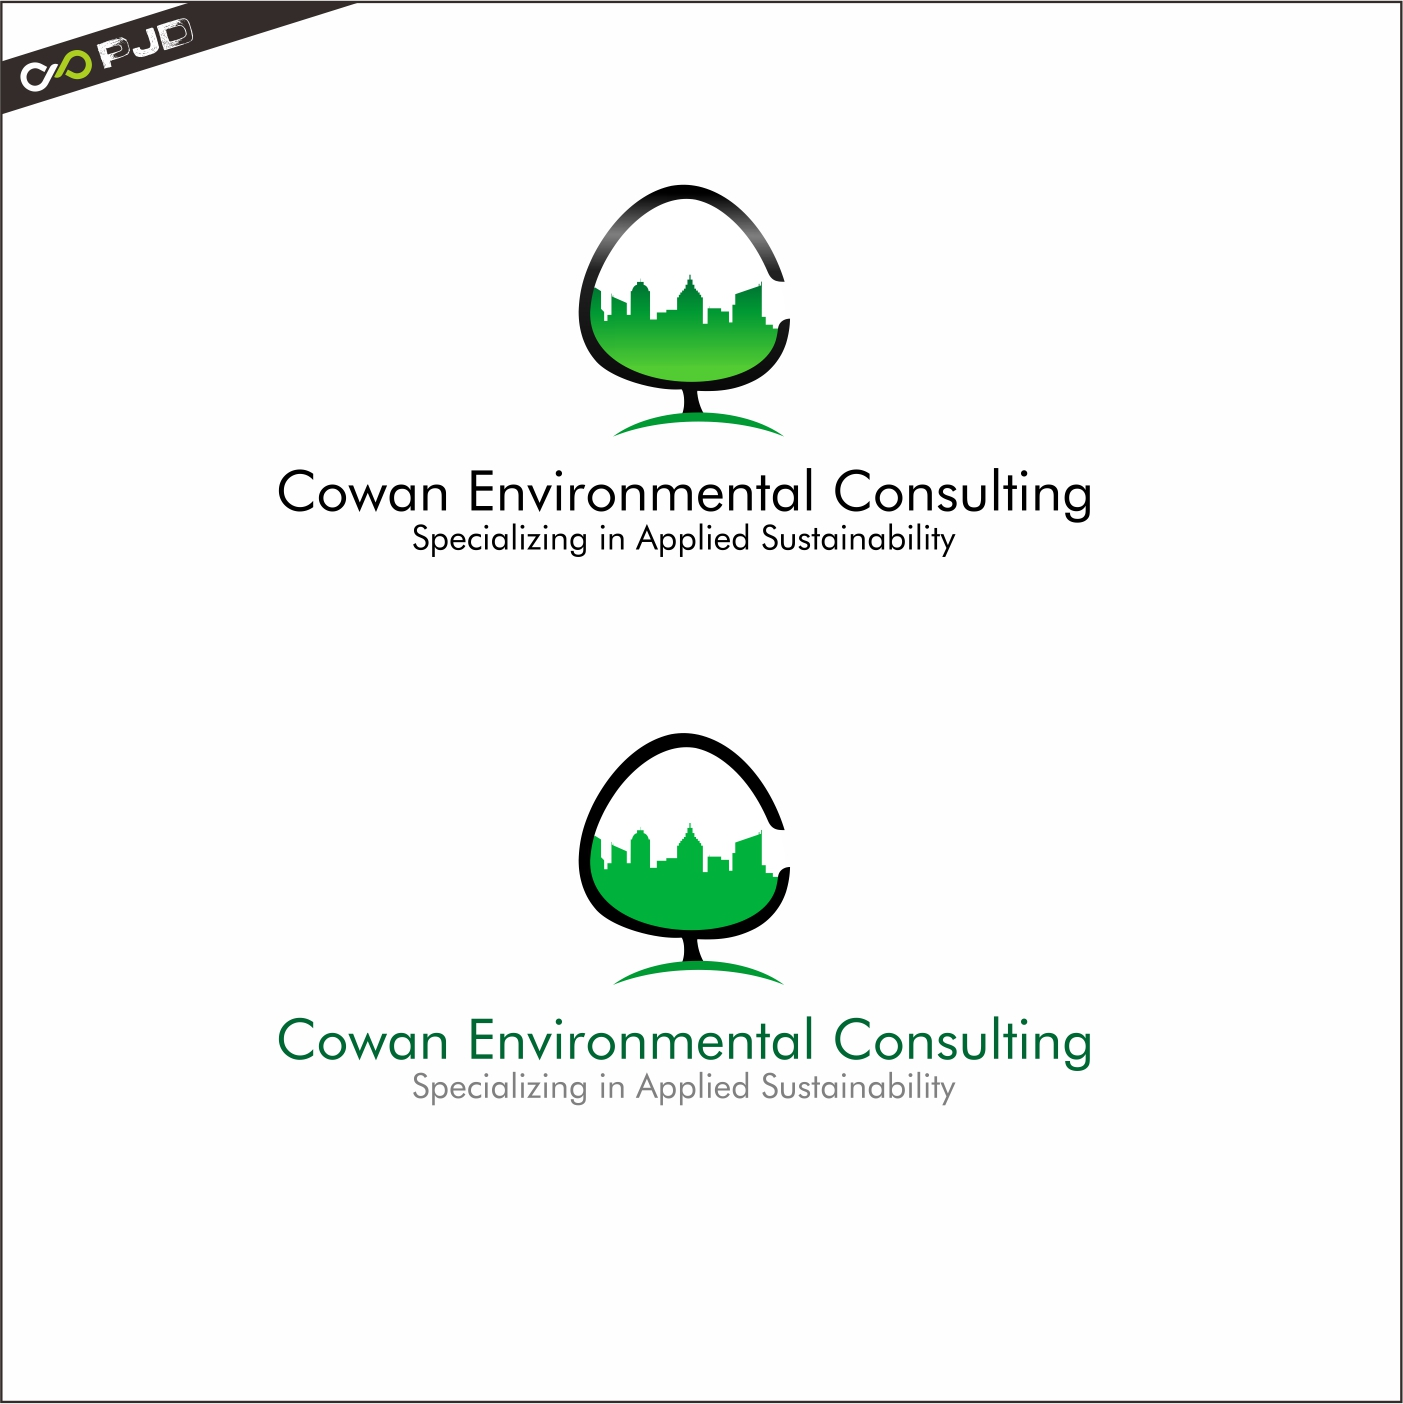 Logo Design by PJD - Entry No. 101 in the Logo Design Contest Fun Logo Design for Cowan Environmental Consulting.